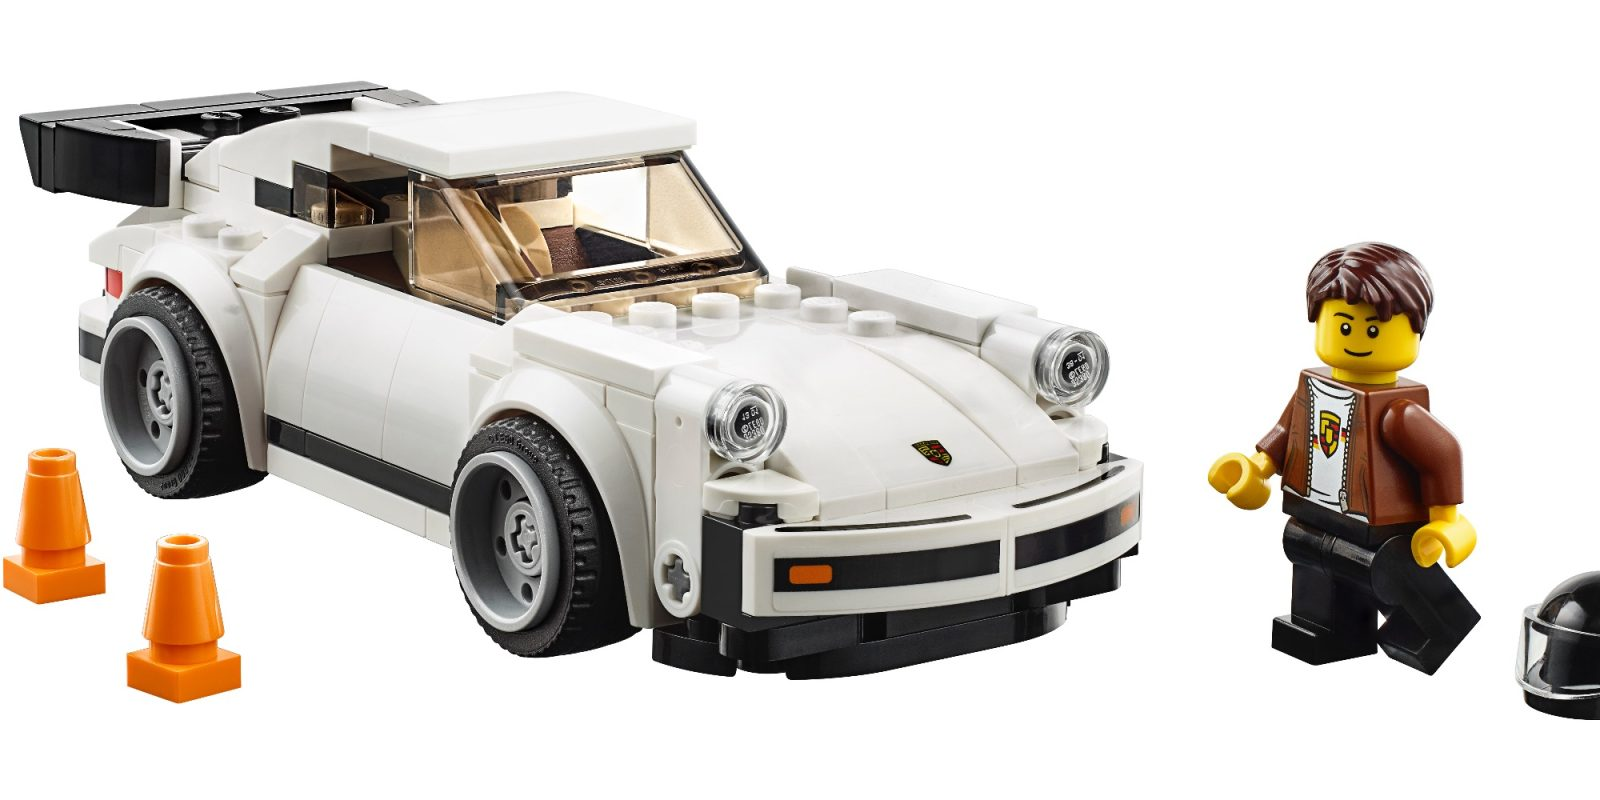 LEGO expands Speed Champions series with launch of new 1974 Porsche 911 set